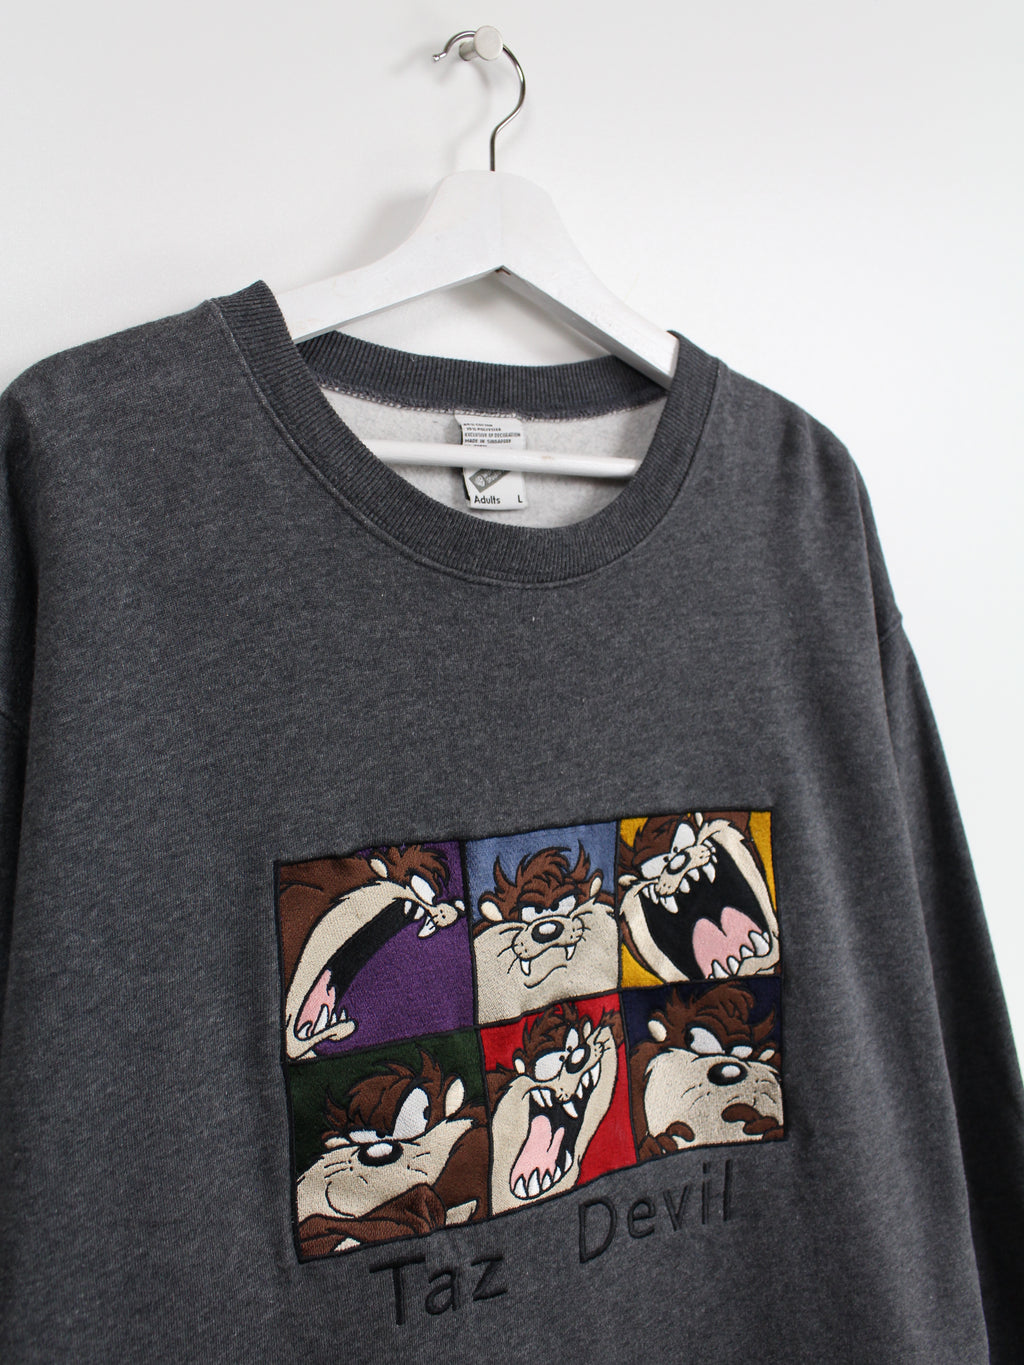 Champion Wizards Trikot Blau L